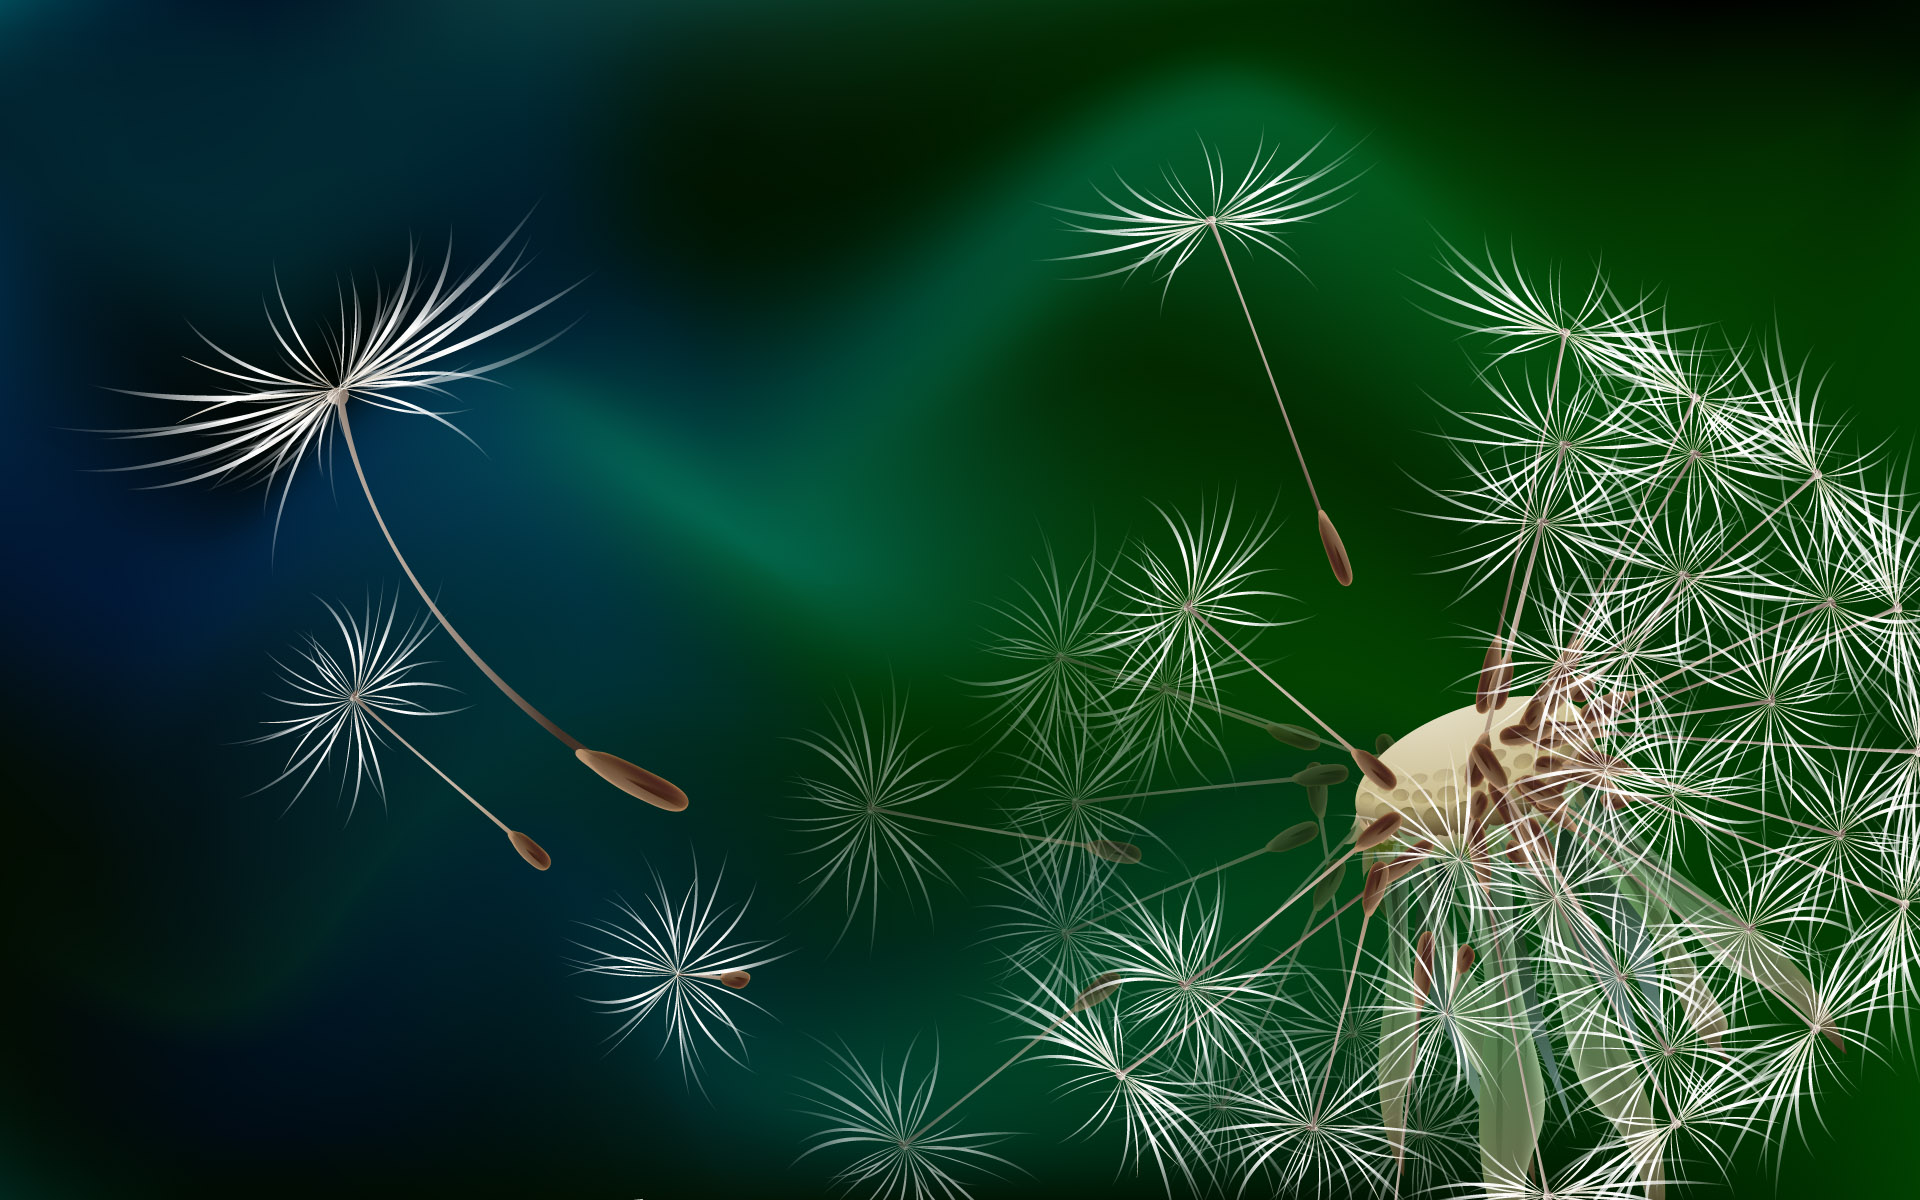 The seeds of a dandelion wallpapers and images   wallpapers pictures 1920x1200